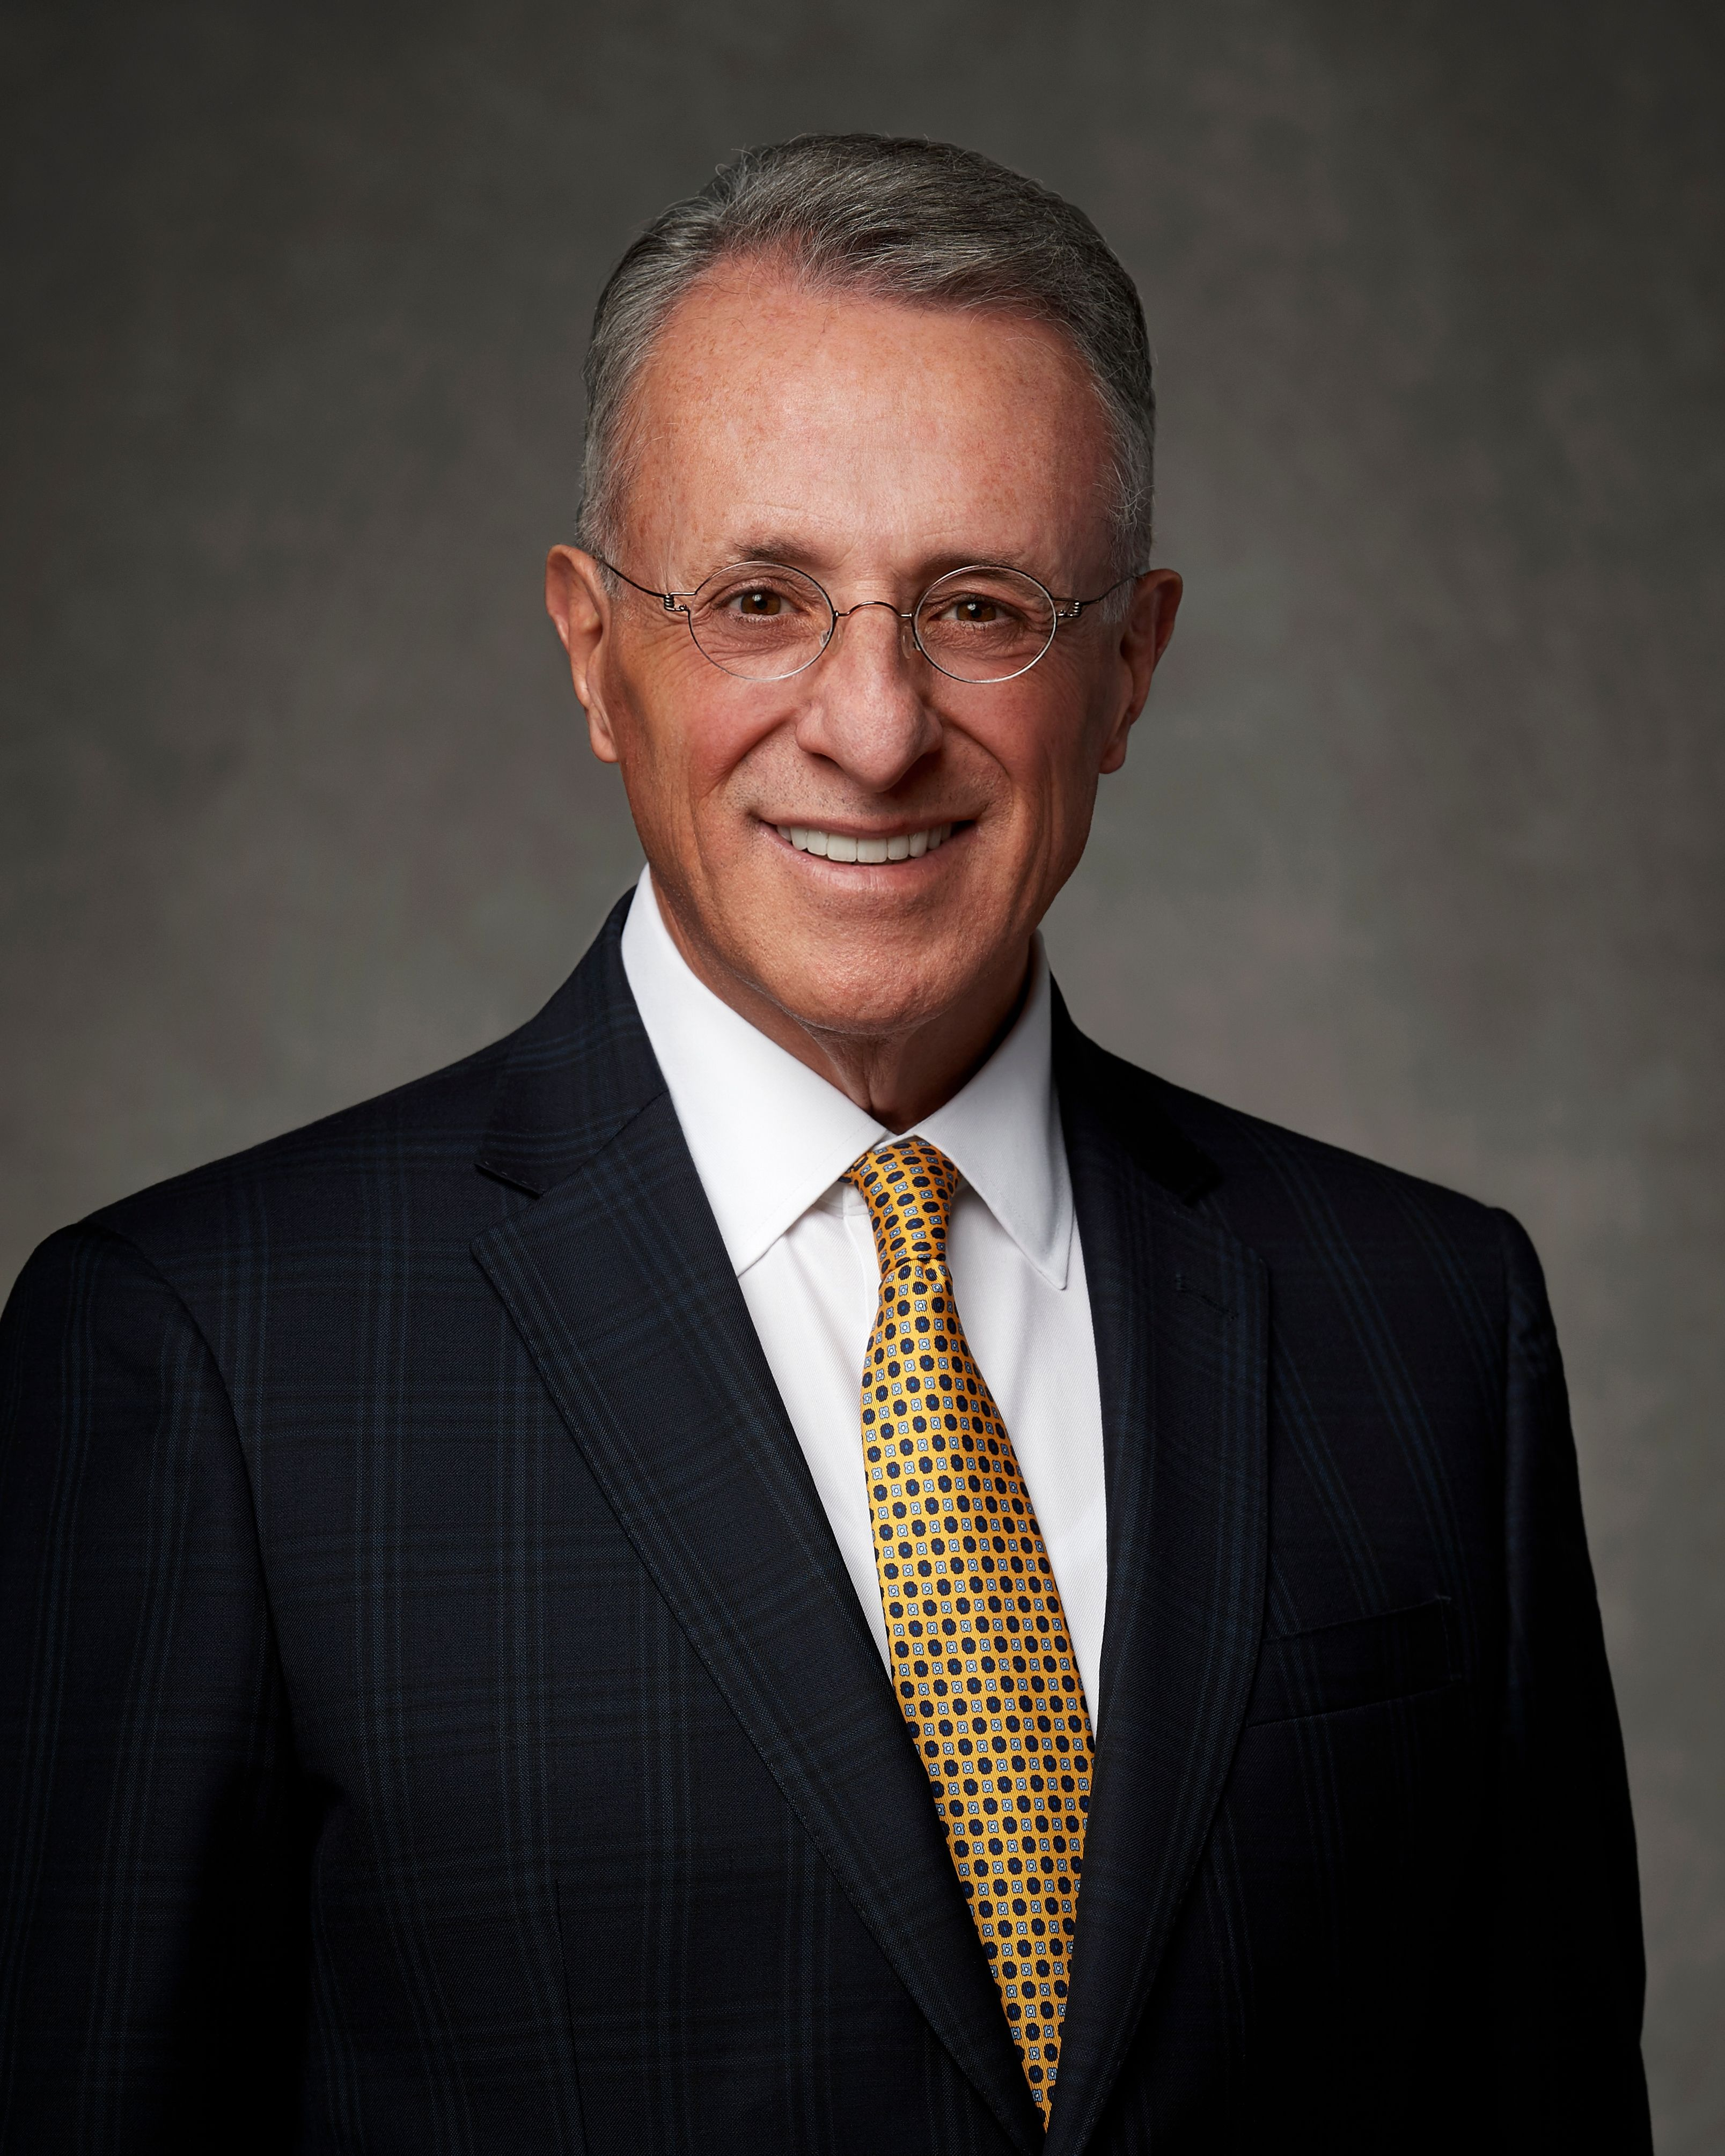 The official portrait of Ulisses Soares.